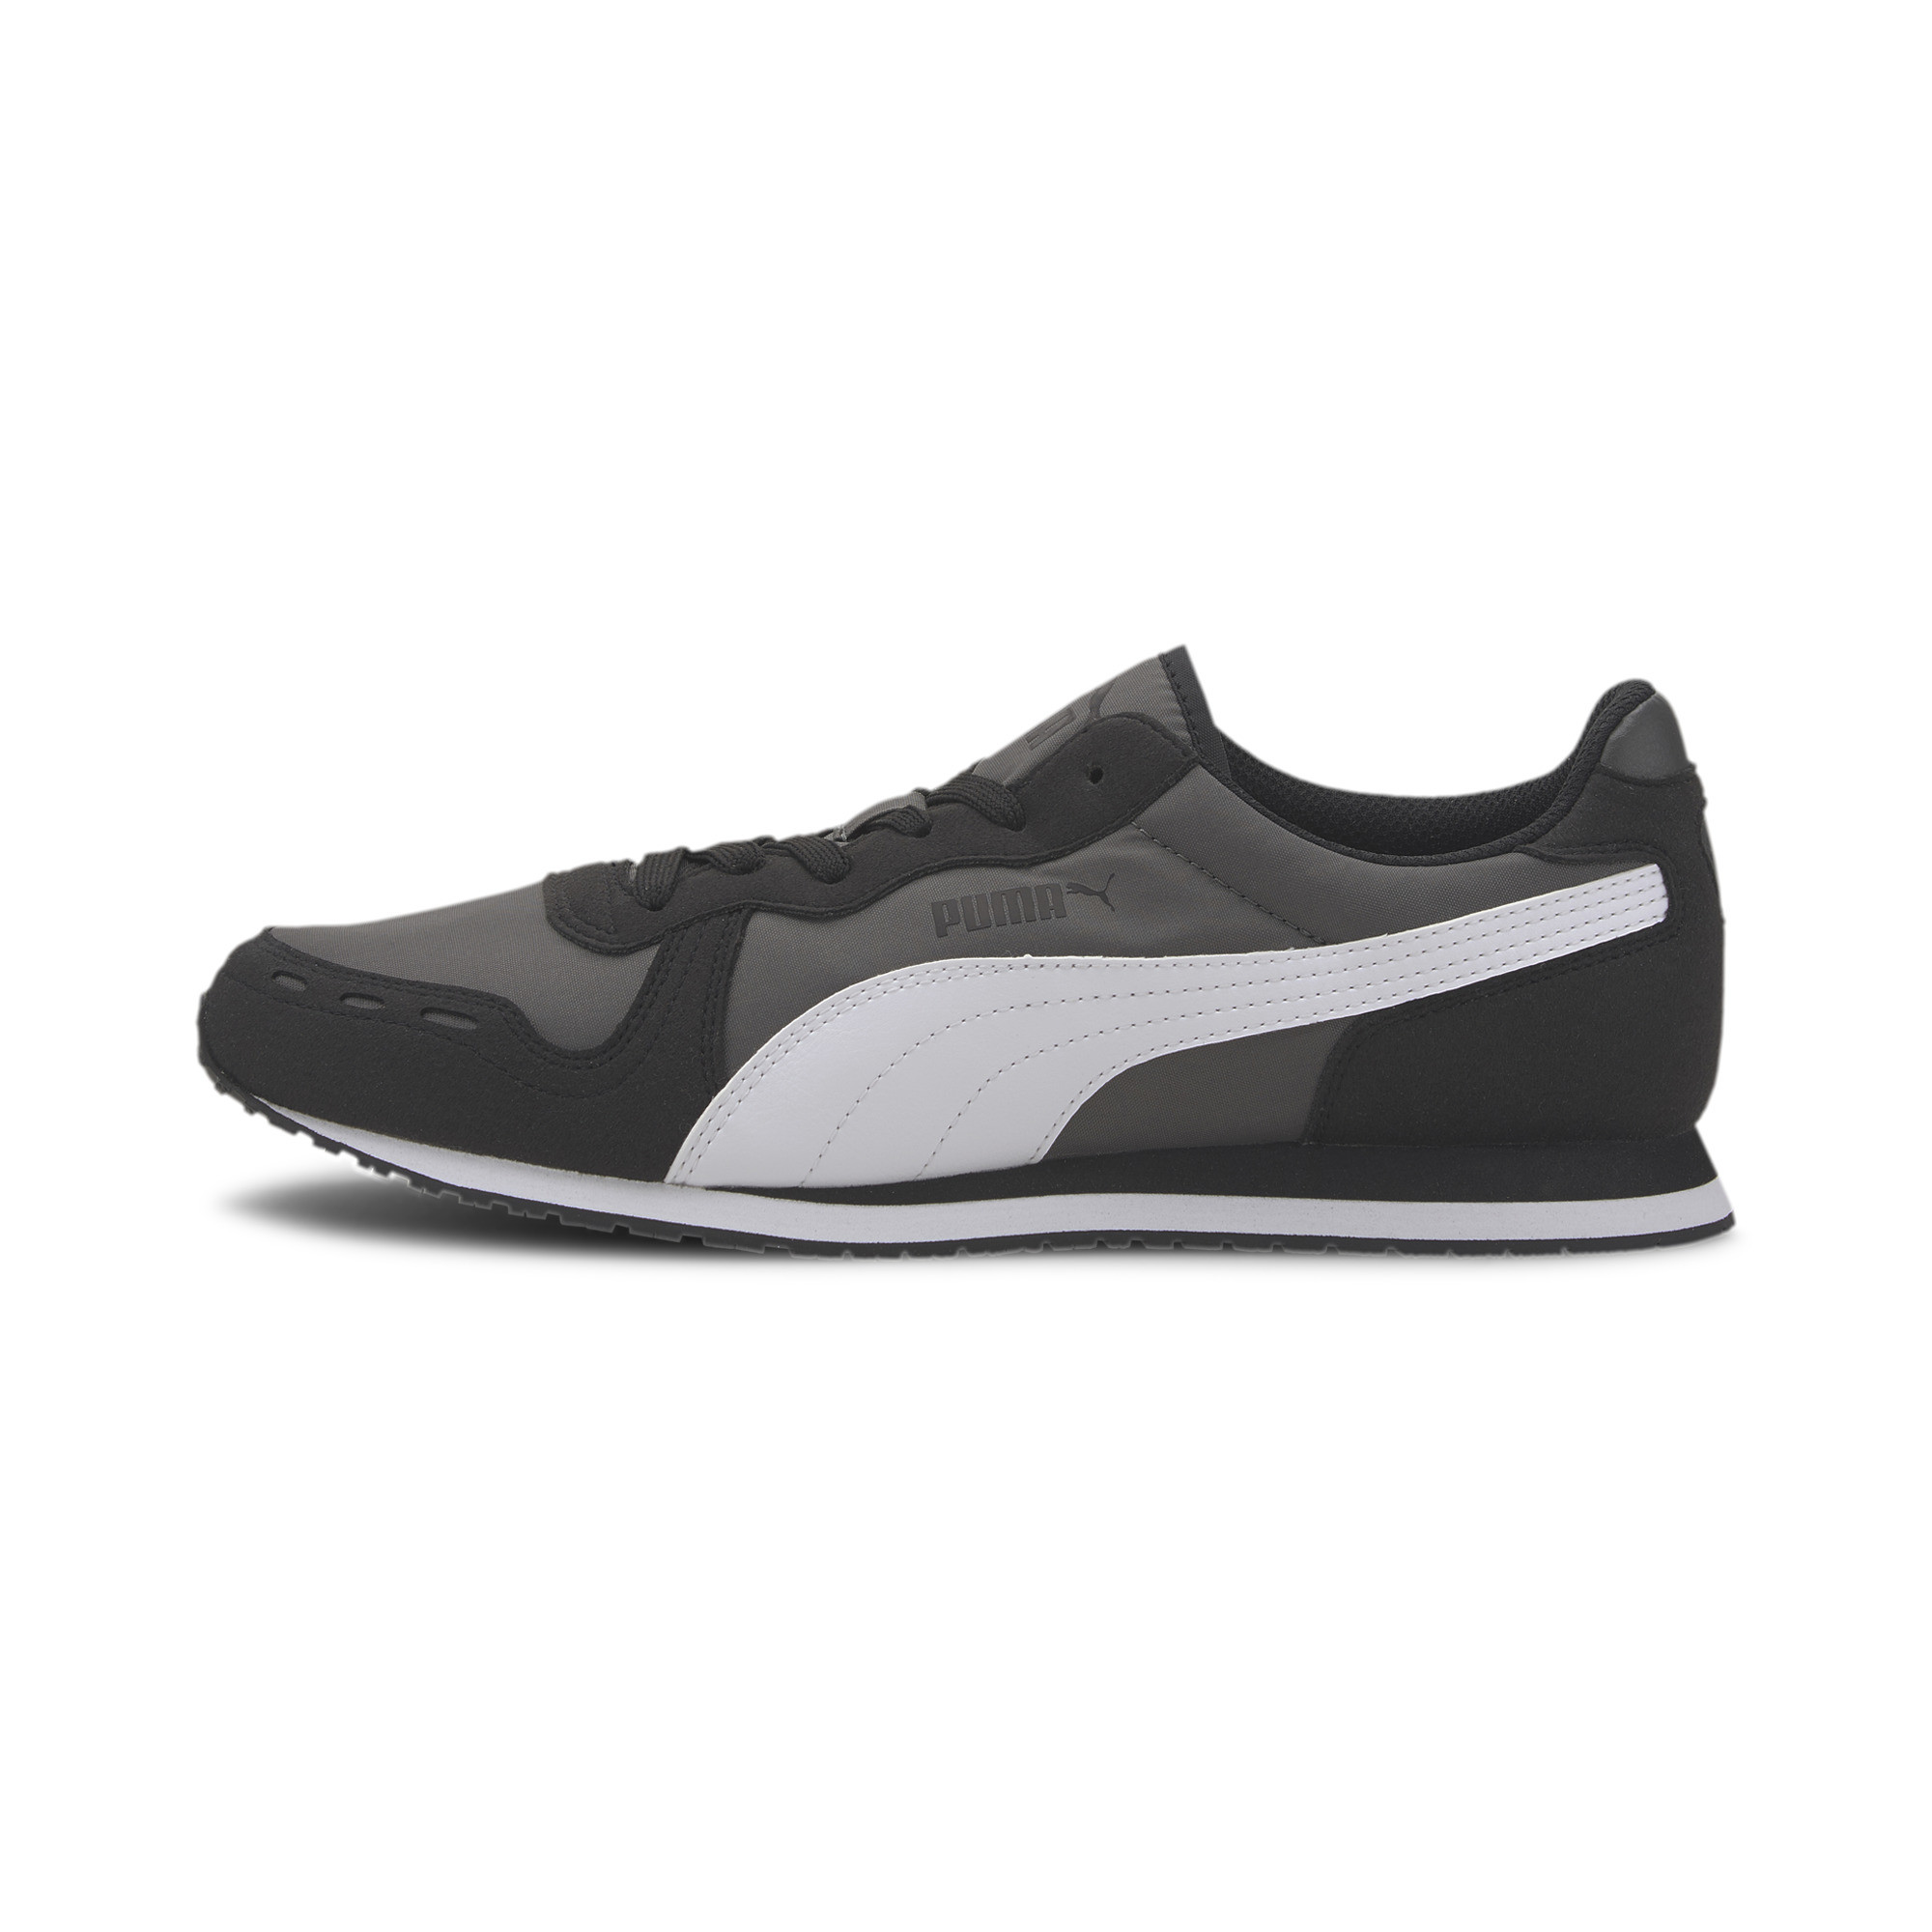 PUMA-Men-039-s-Cabana-Run-Sneakers thumbnail 11